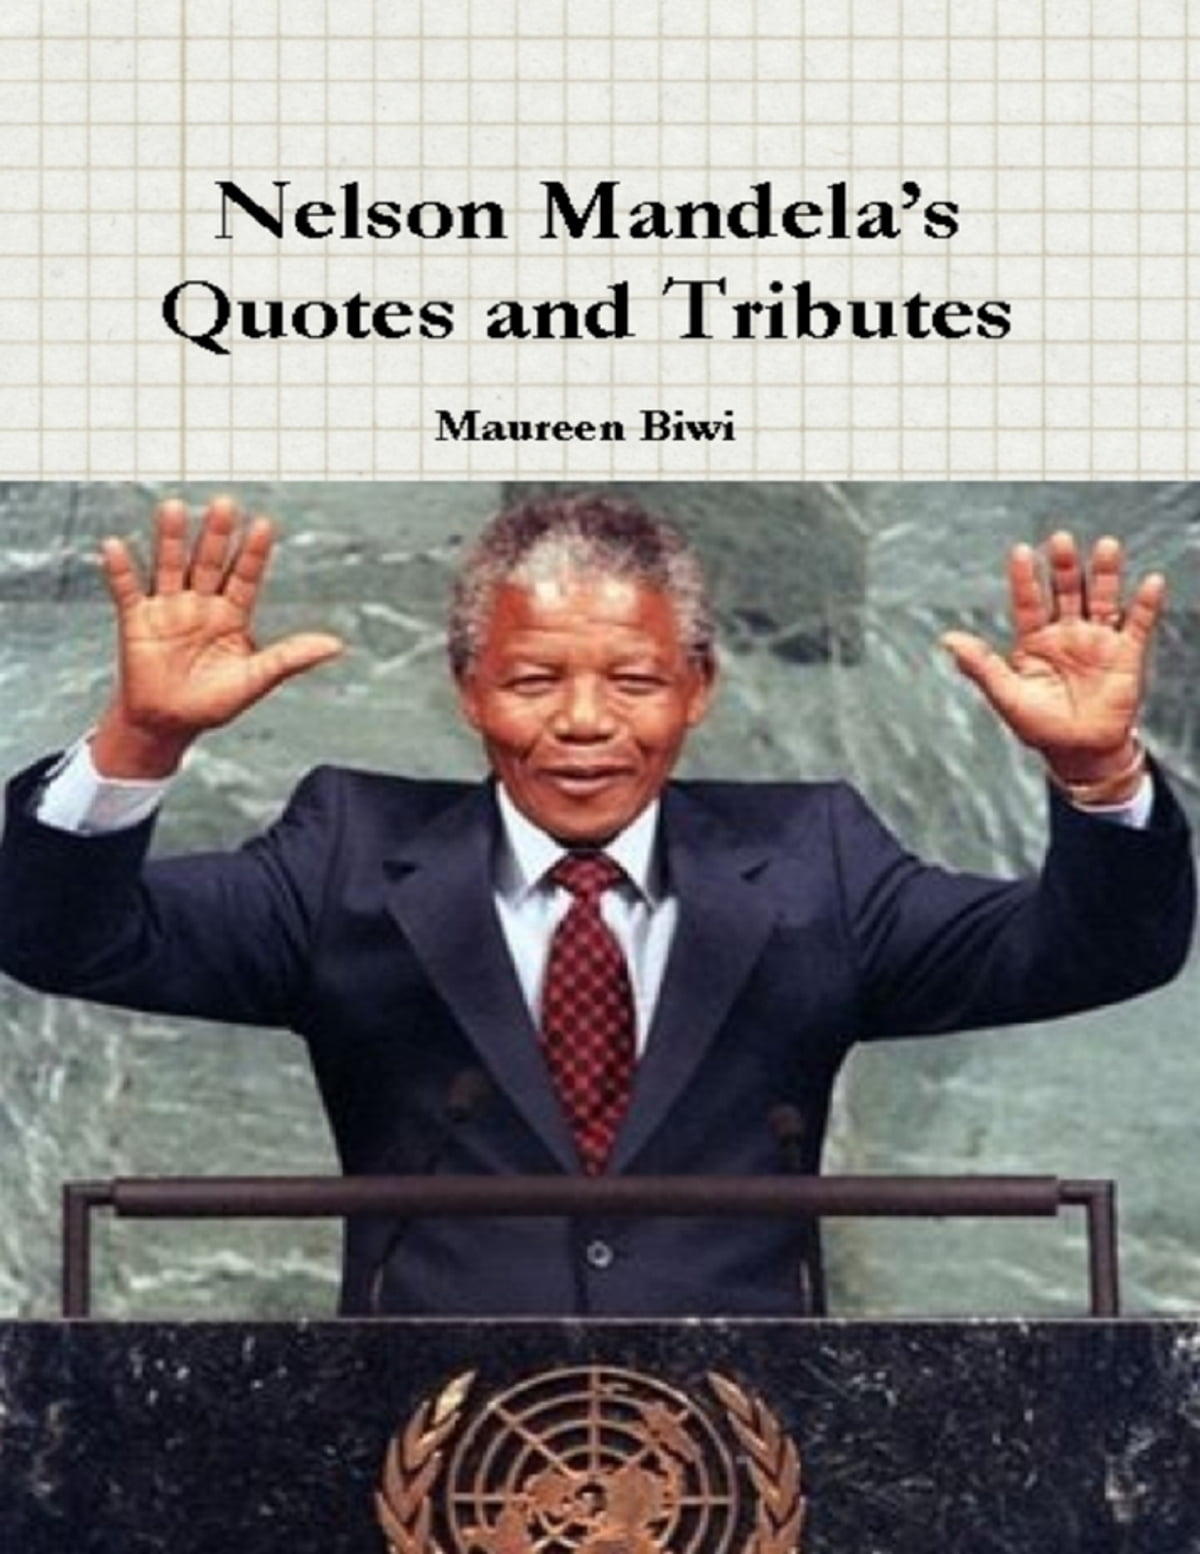 Nelson Mandelas Quotes And Tributes Ebook By Maureen Biwi